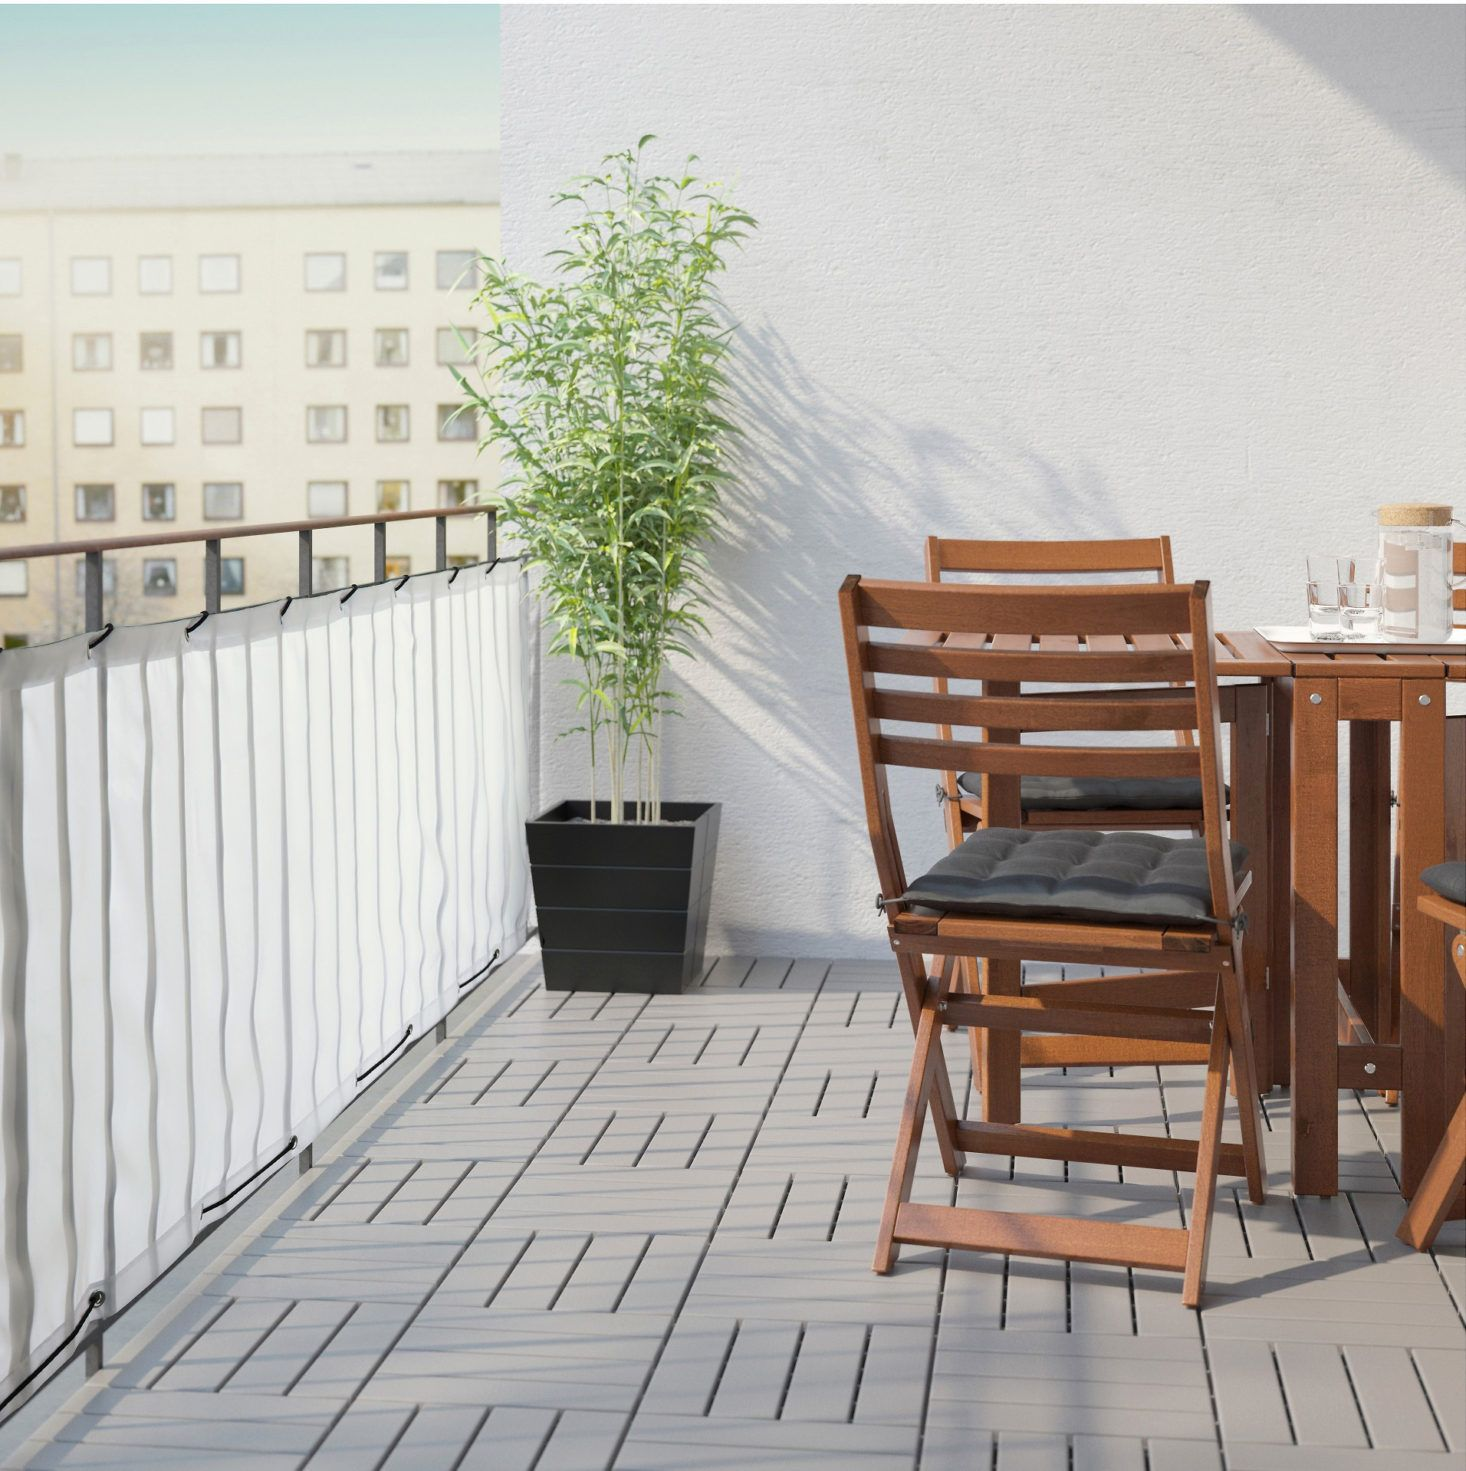 The Ikea Dyning Balcony Privacy Screen In White Is The Same Composition And Measurement As The Design In Black Ab Balcony Privacy Screen Patio Balcony Privacy